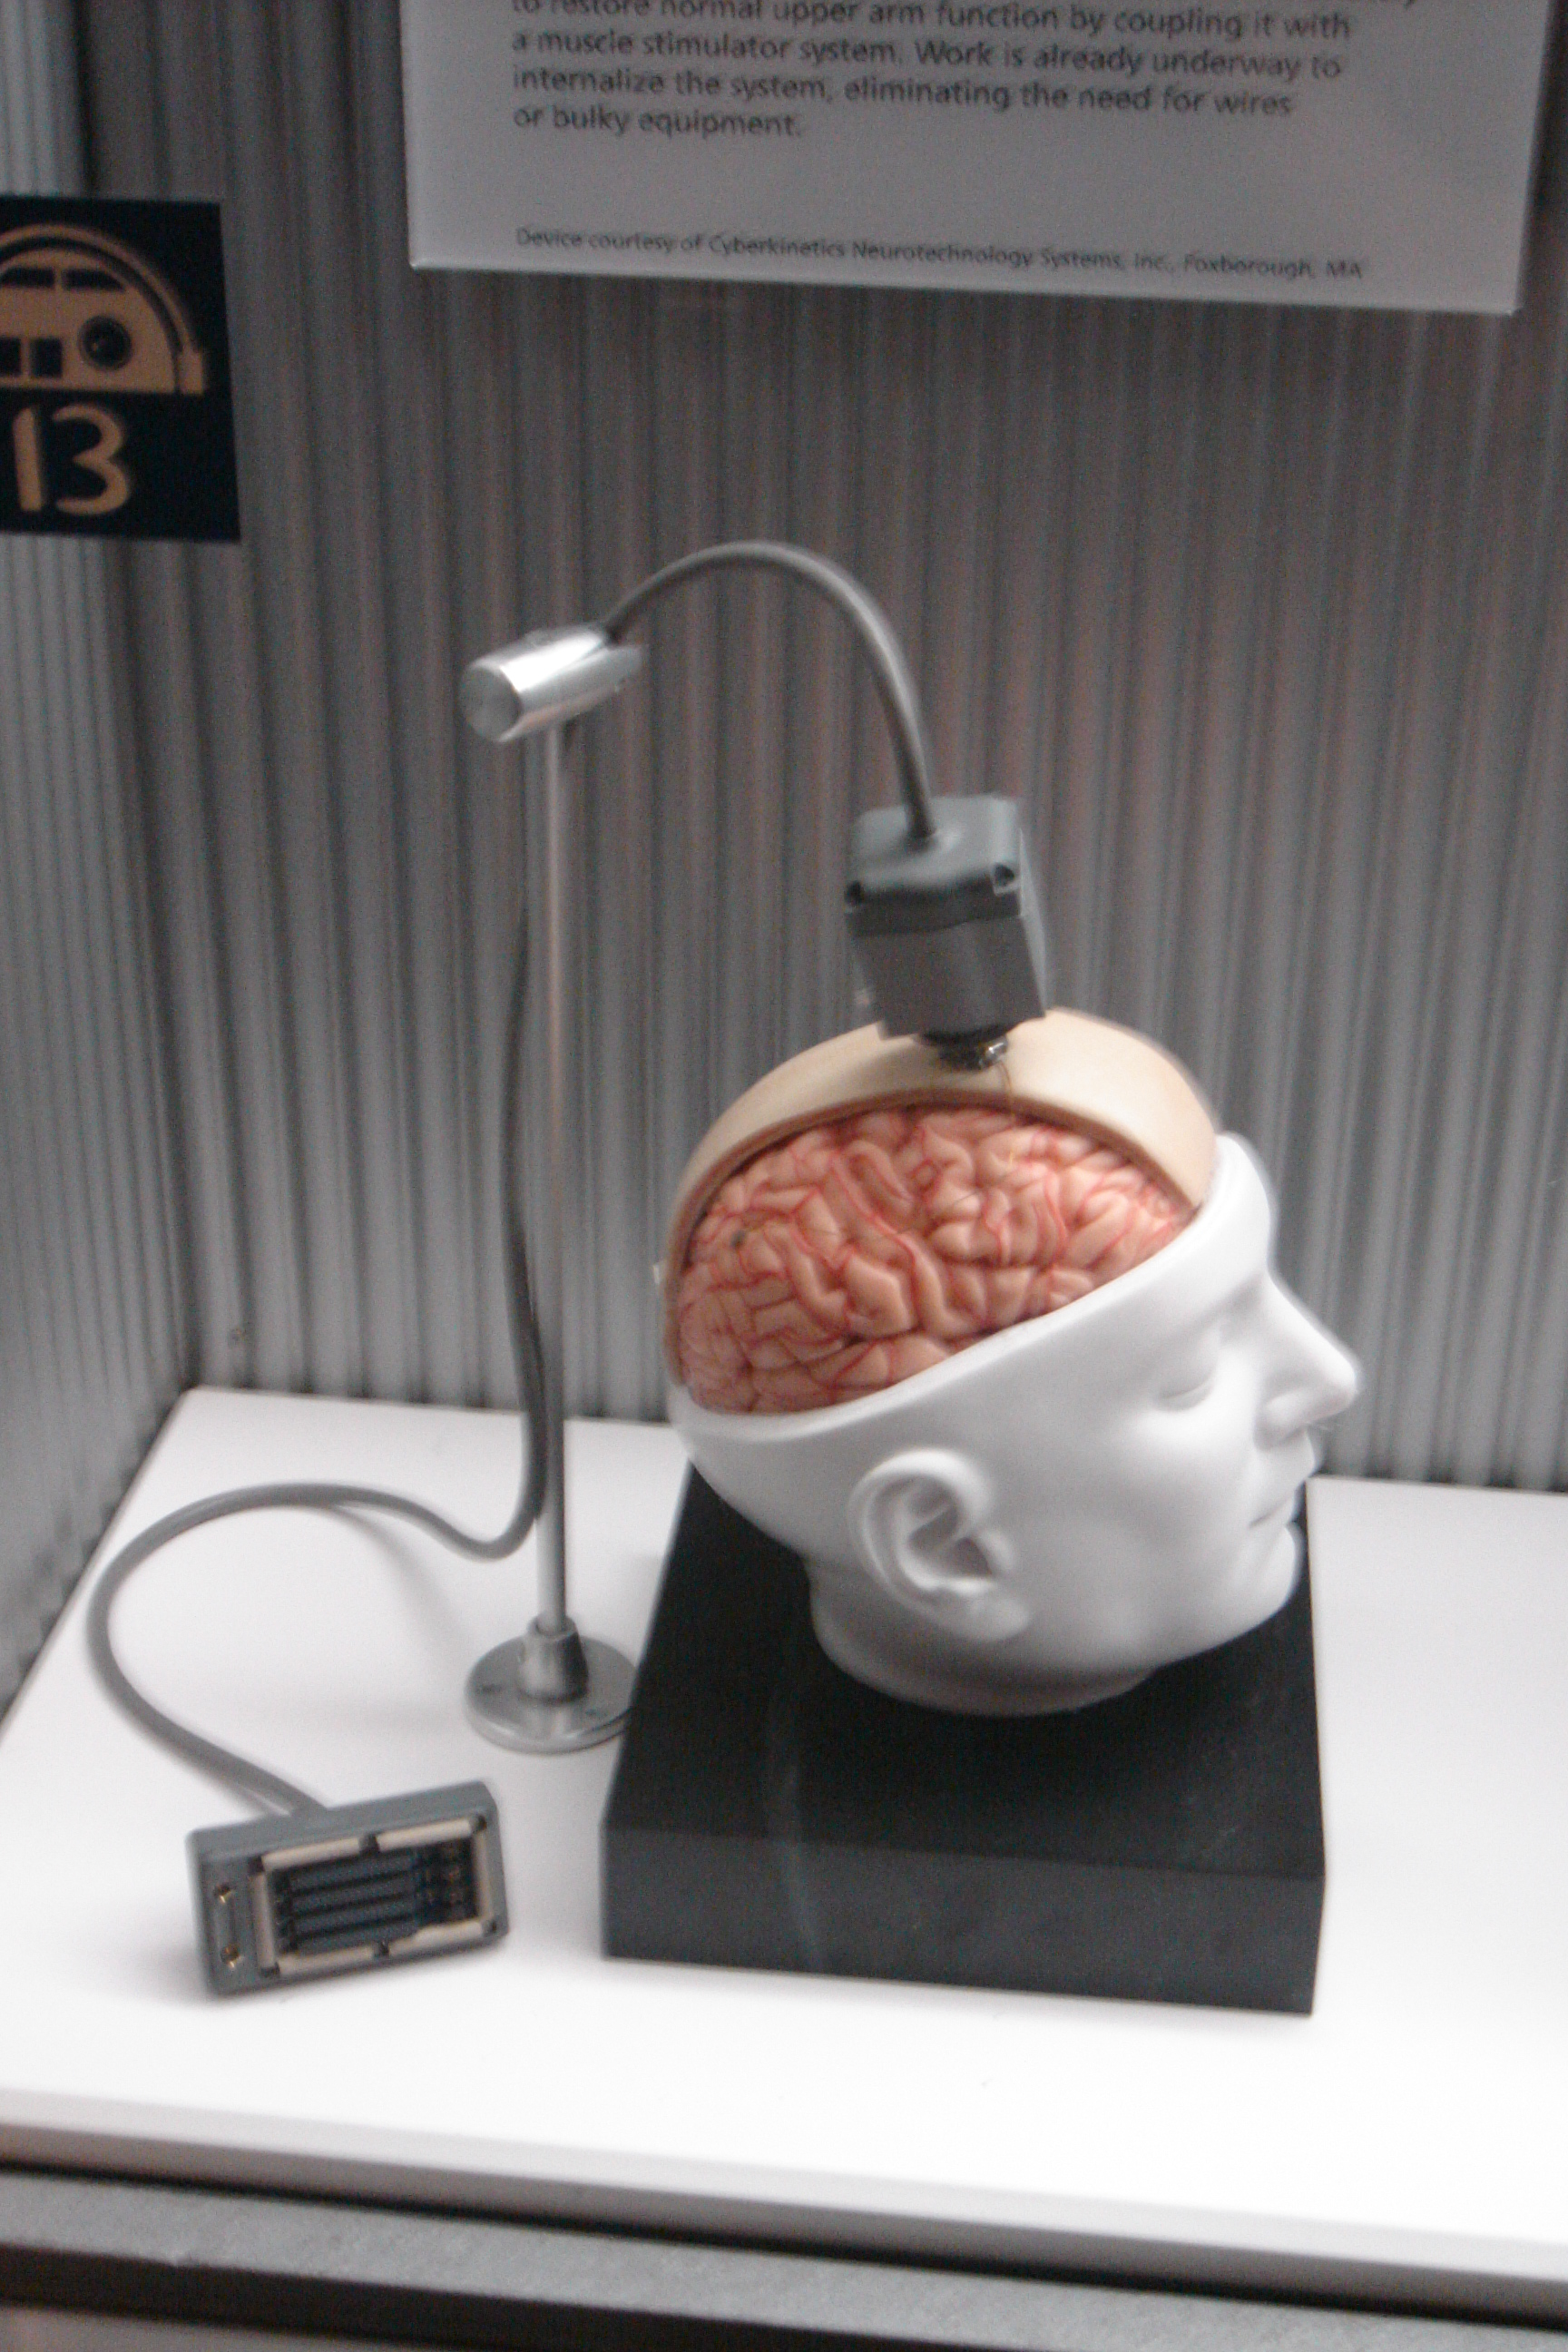 brain computer interface The authors' brain–computer interface (bci) research has been supported by the national institutes of health, the james s mcdonnell foundation, the als hope foundation, the nec foundation, the altran foundation, and the brain communication foundation.